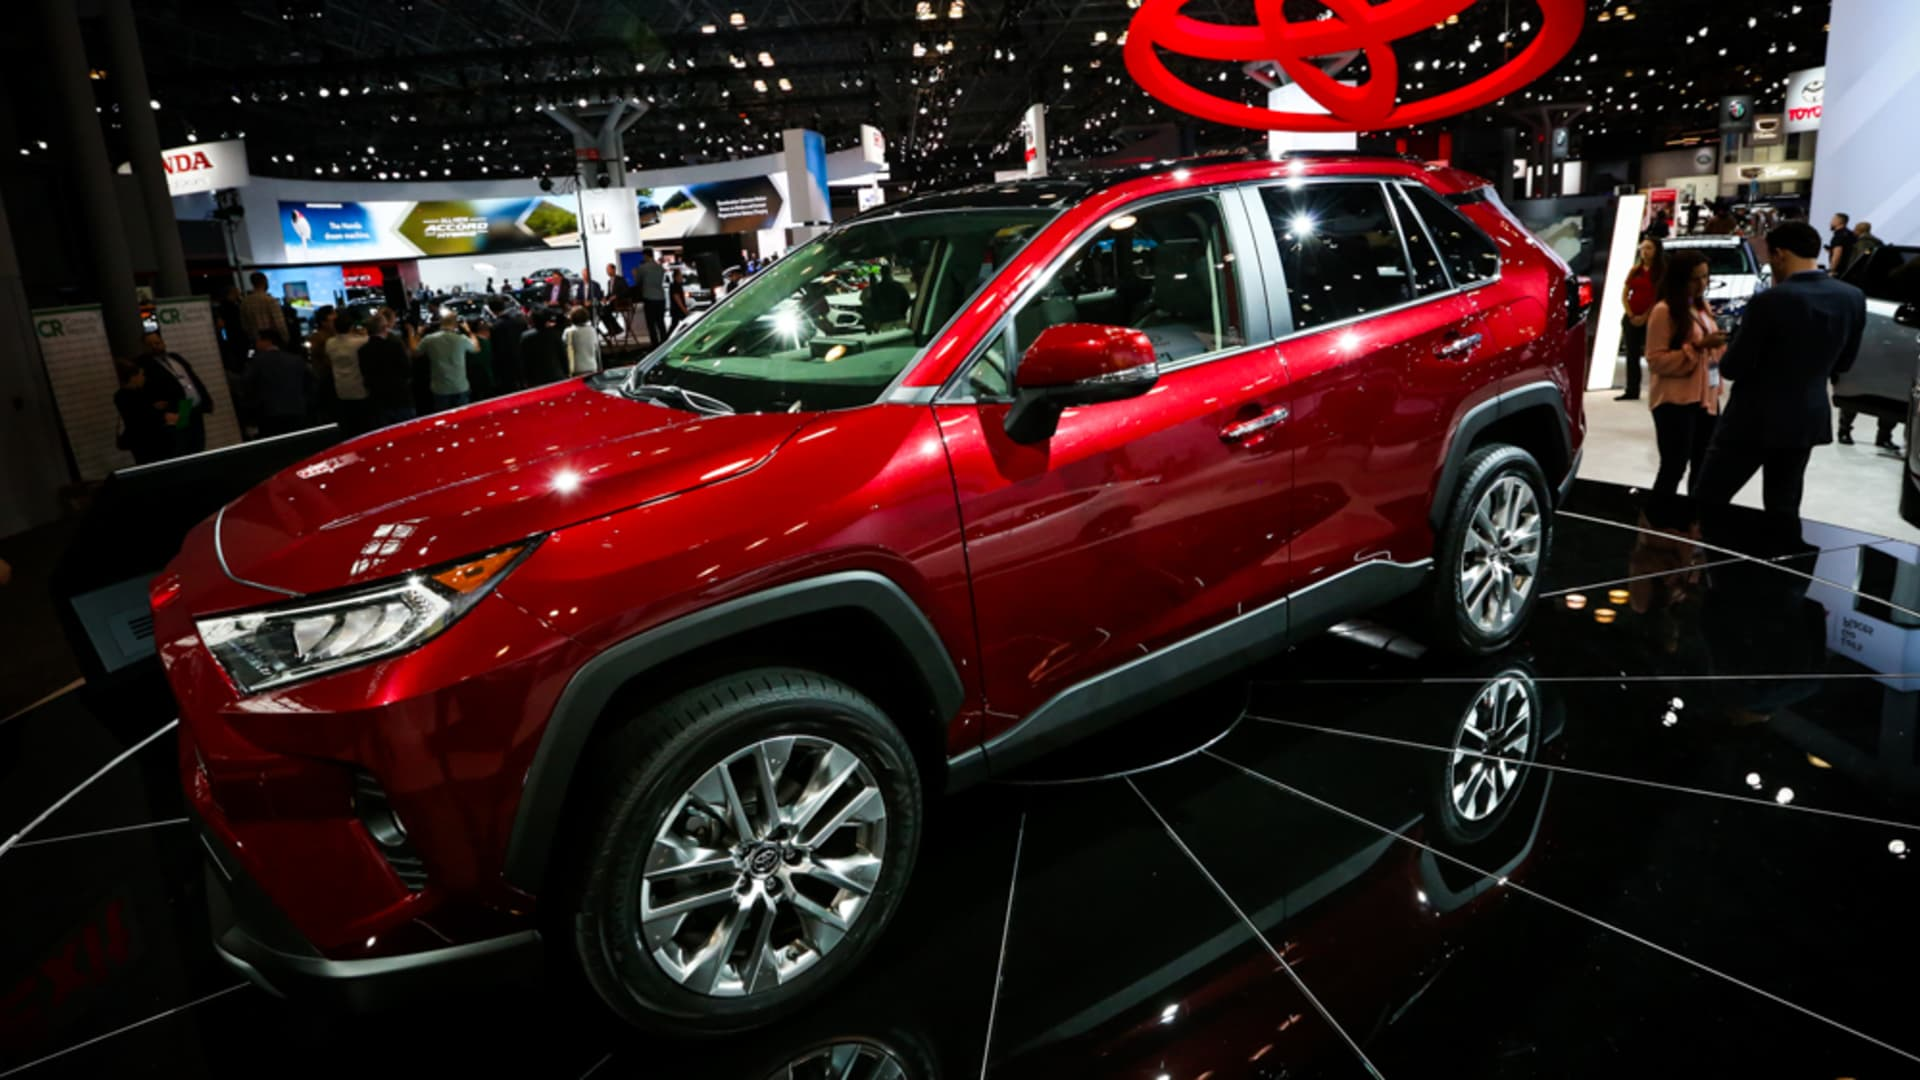 2018 Toyota Rav 4 on display at the 2018 New York International Auto Show on March 29th, 2018.